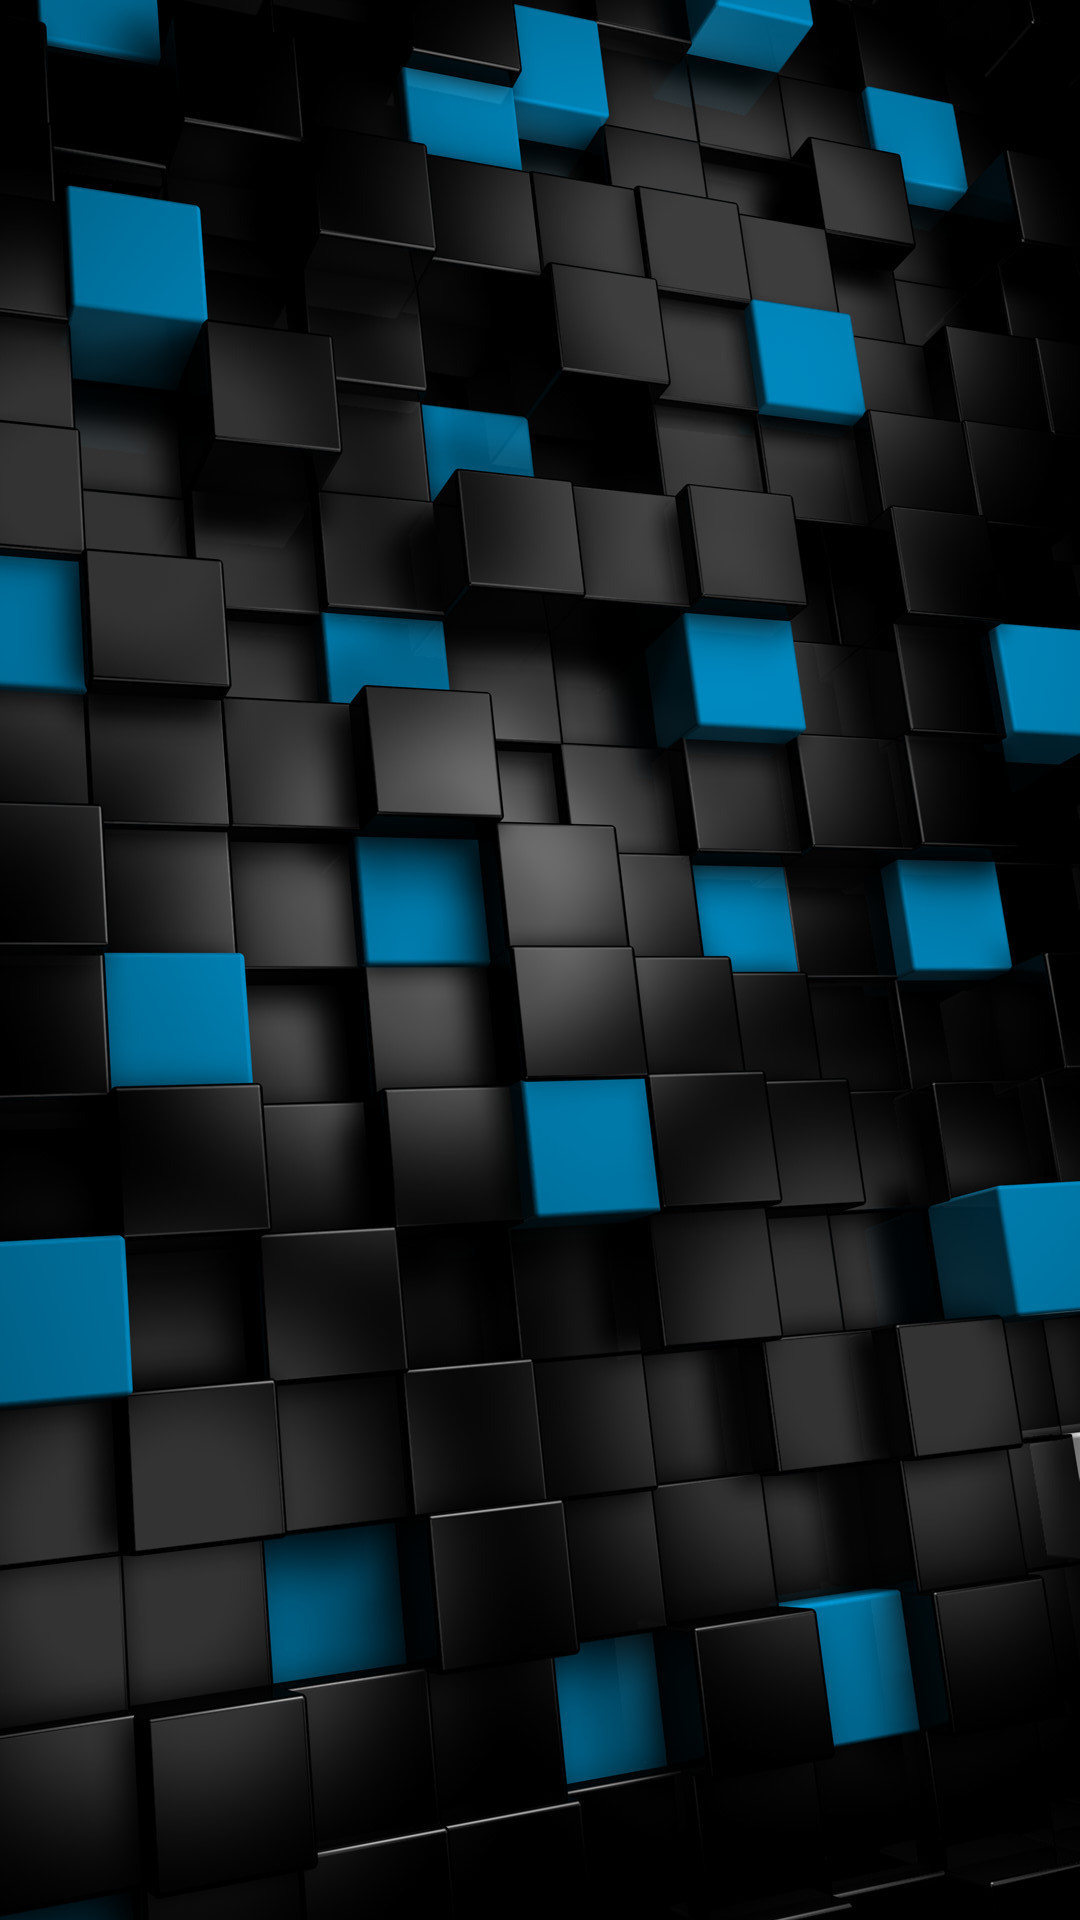 Abstract black cubes htc one wallpaper – High quality htc one wallpapers  and abstract backgrounds designed by the best and creative artists in the  world.